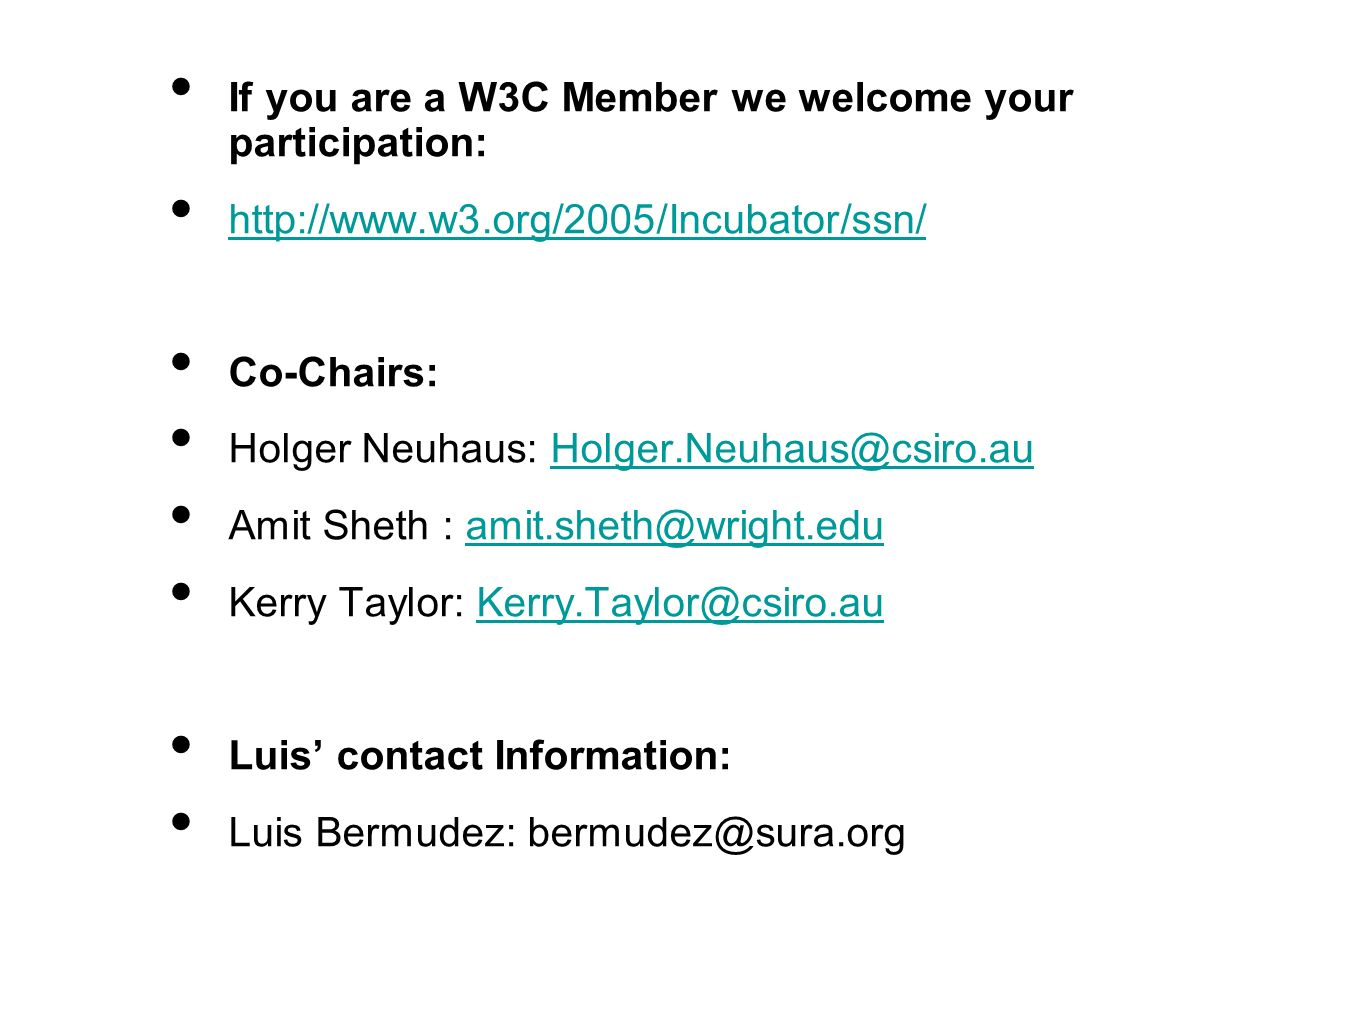 If you are a W3C Member we welcome your participation: http://www.w3.org/2005/Incubator/ssn/ Co-Chairs: Holger Neuhaus: Holger.Neuhaus@csiro.auHolger.